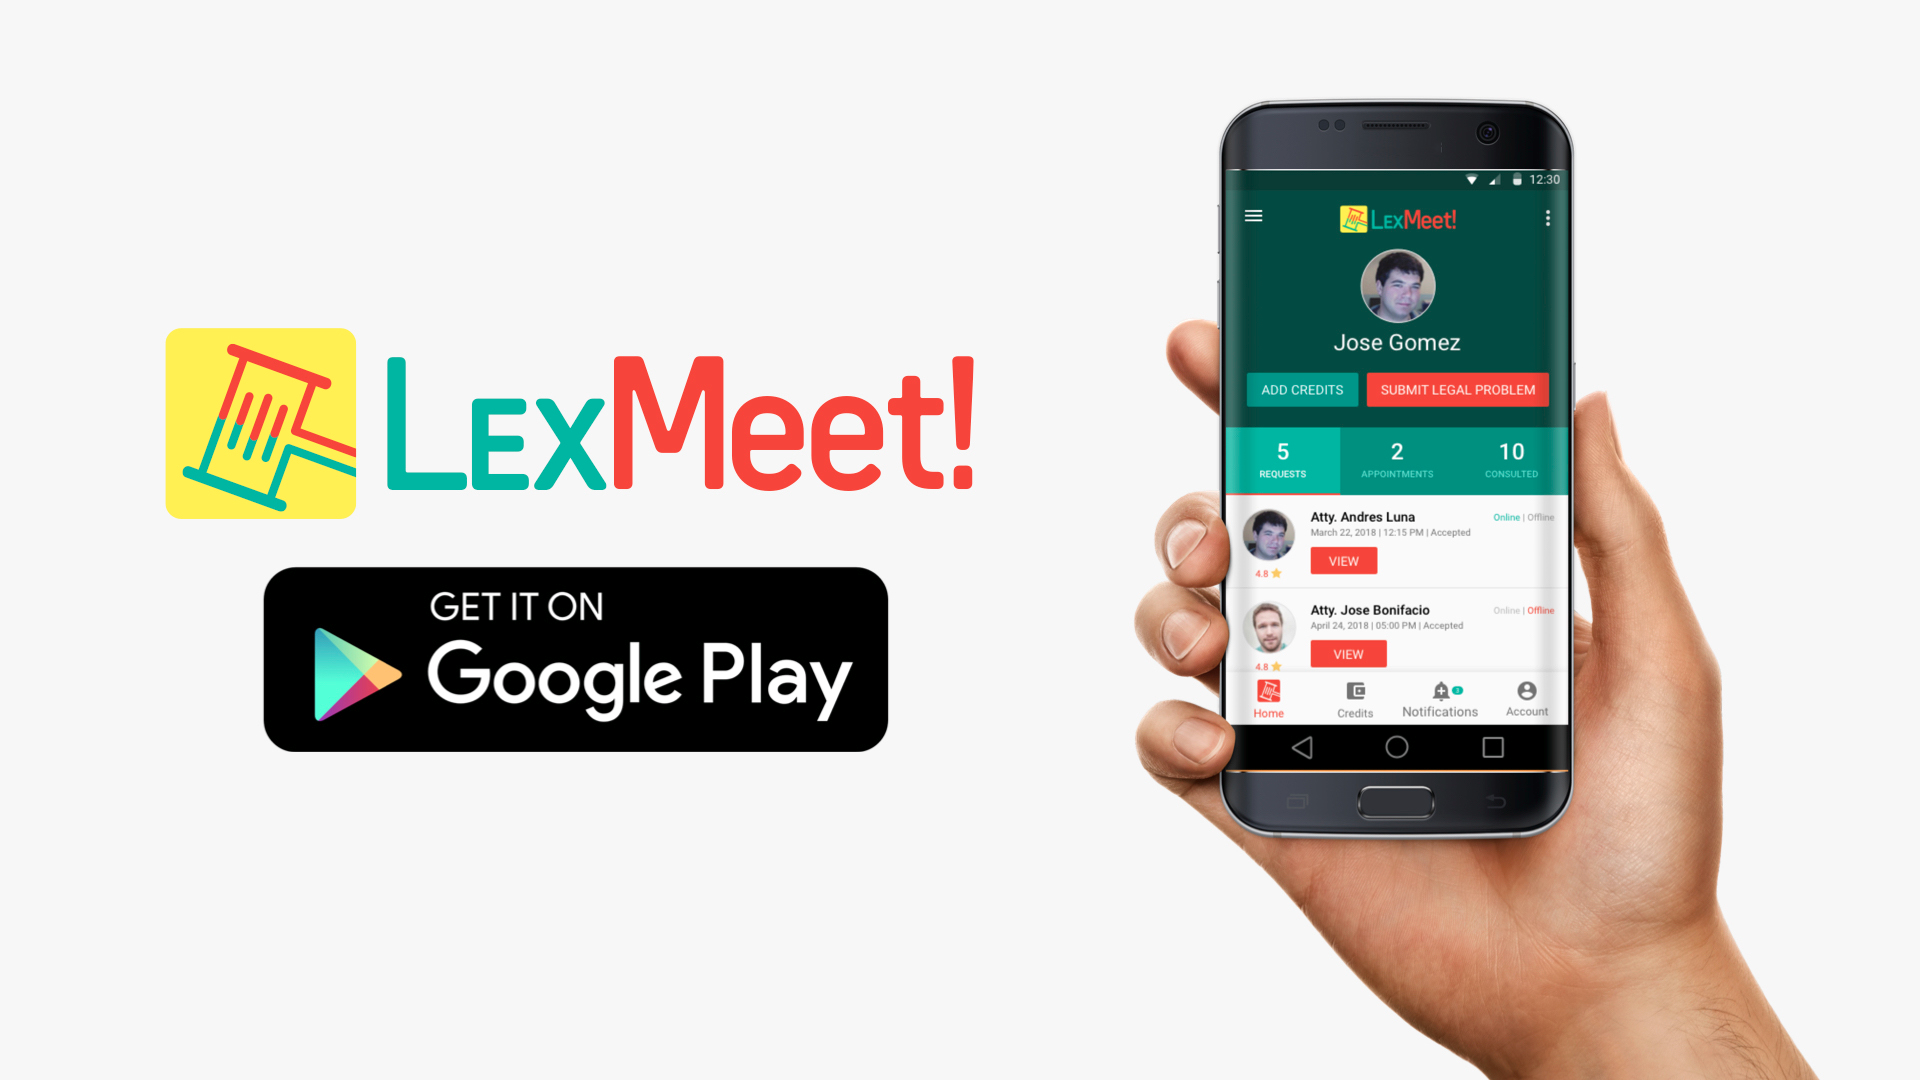 LexMeet App Offers Easy Access to Lawyers, Affordable Legal Consultations  Right At Your Fingertips